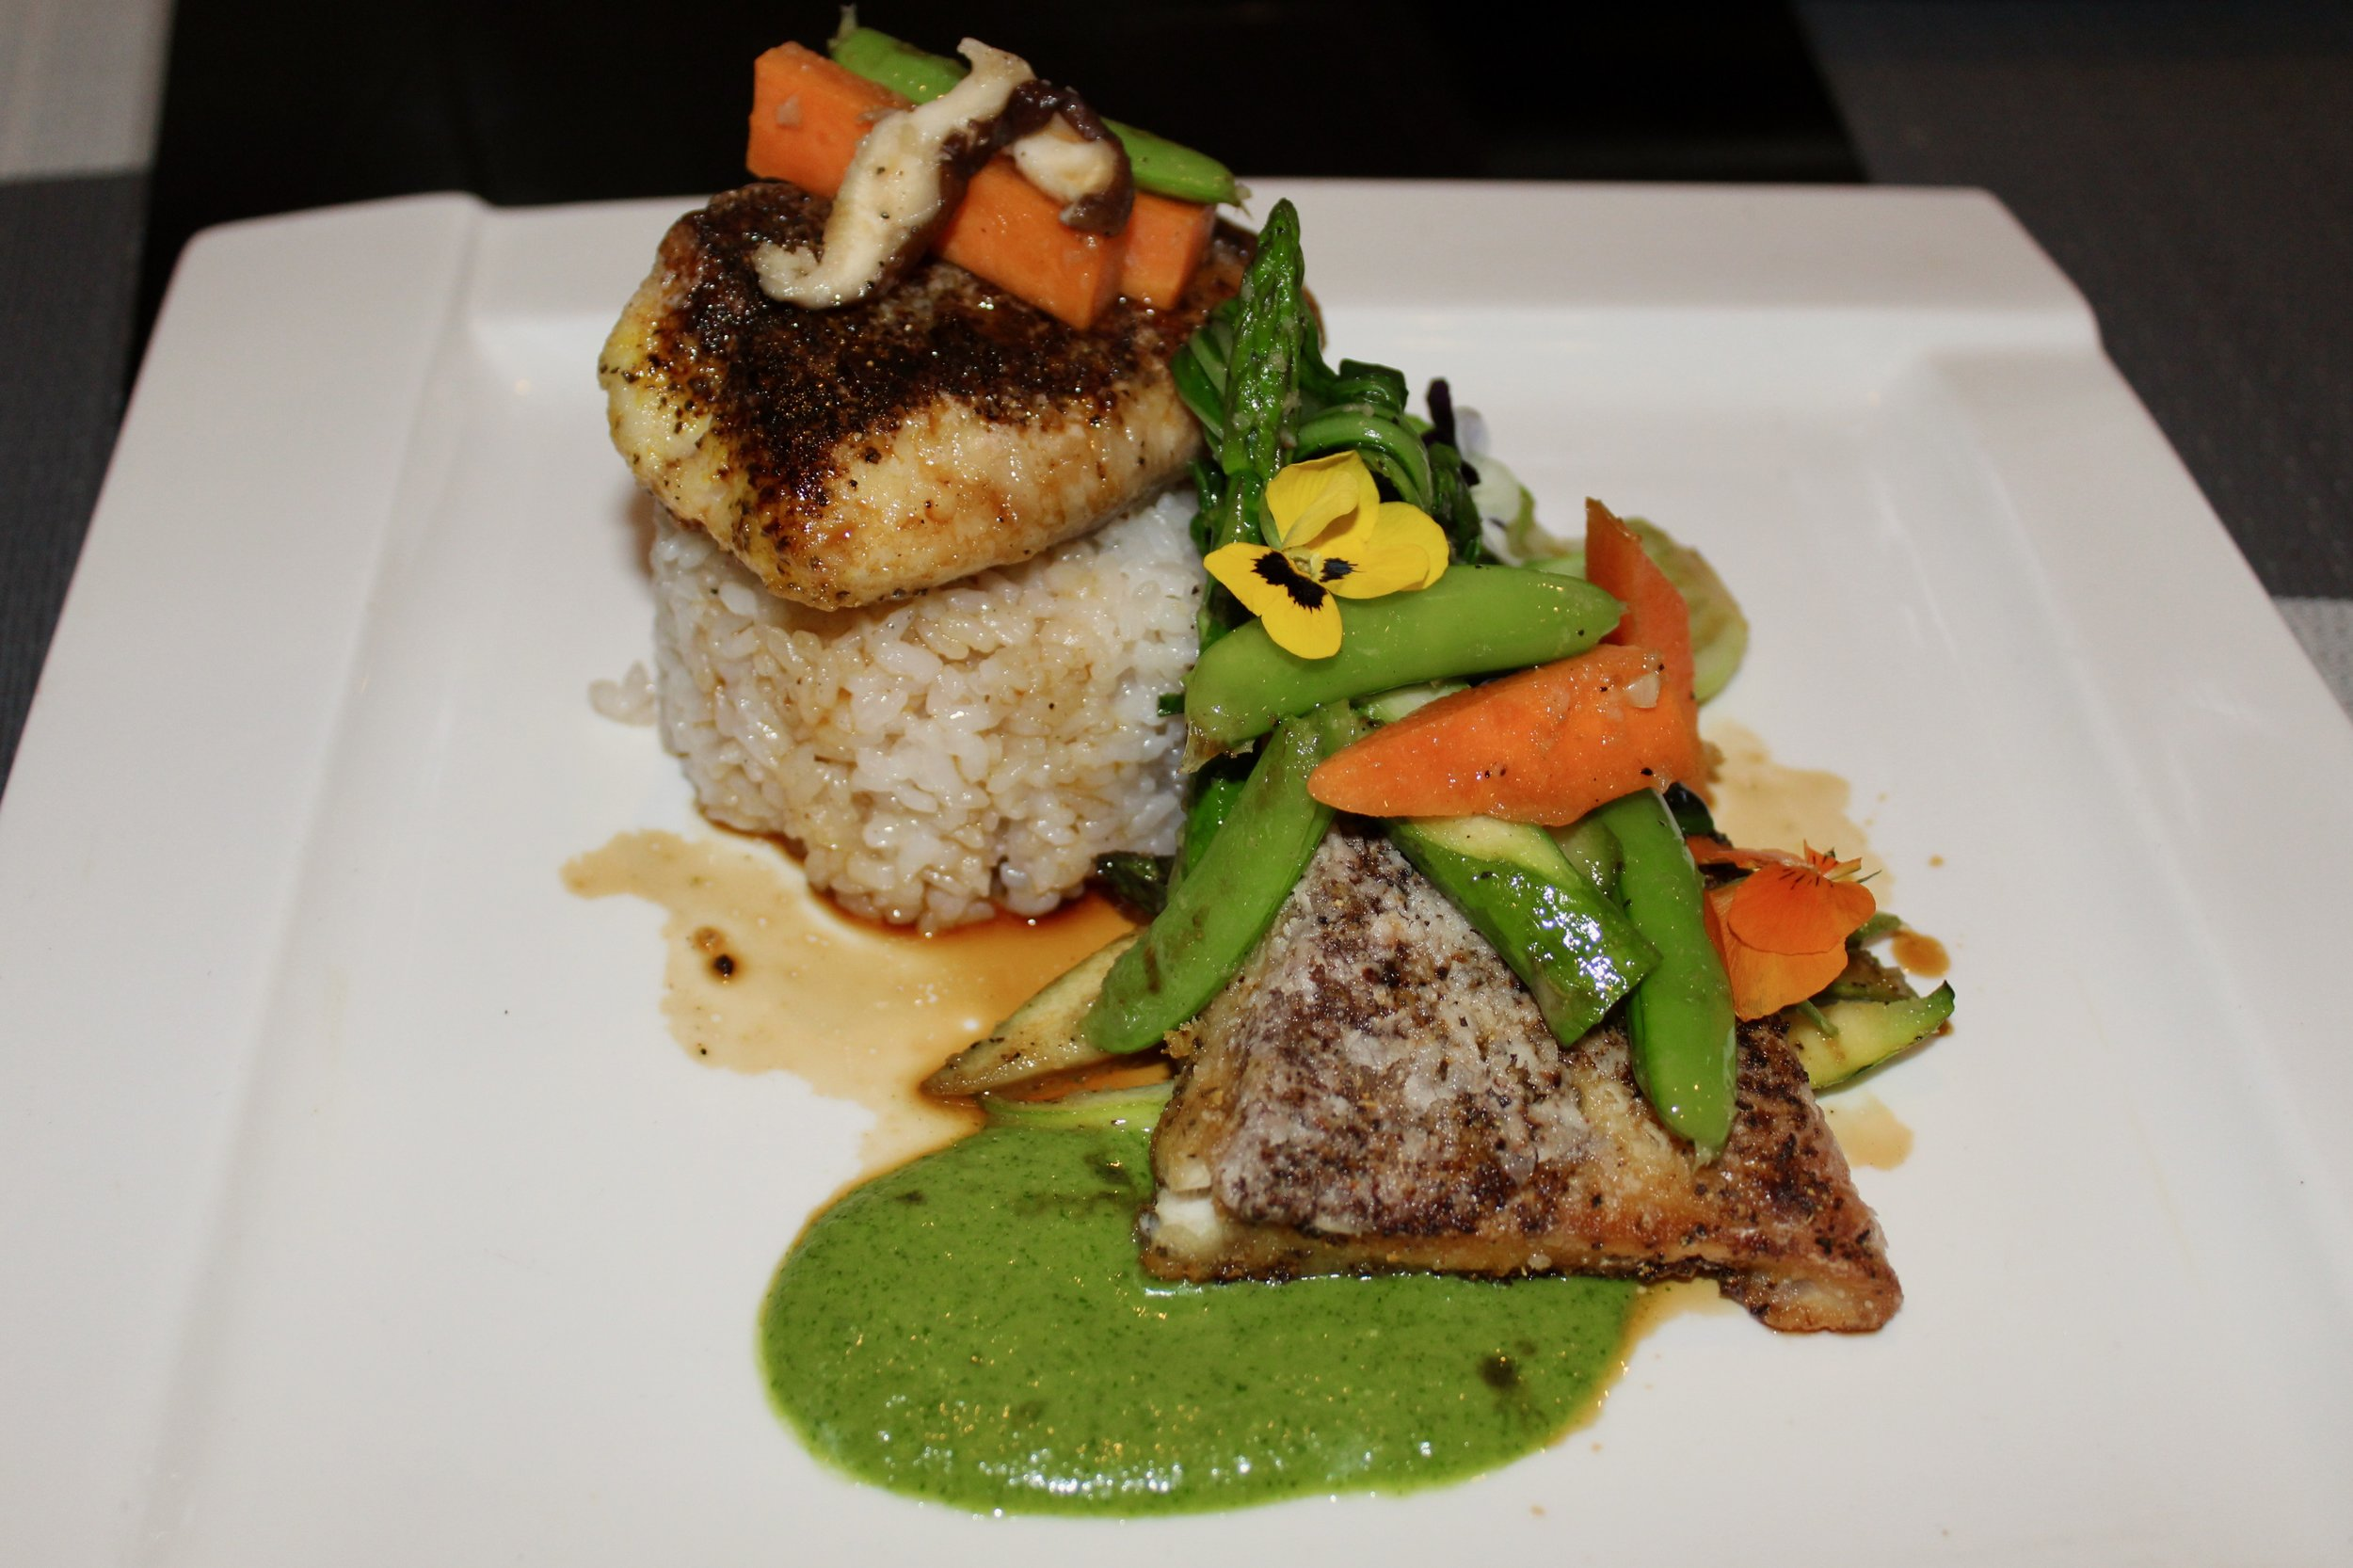 Pan-seared Wild Striped Bass with coconut rice, asparagus and jalapeno miso.